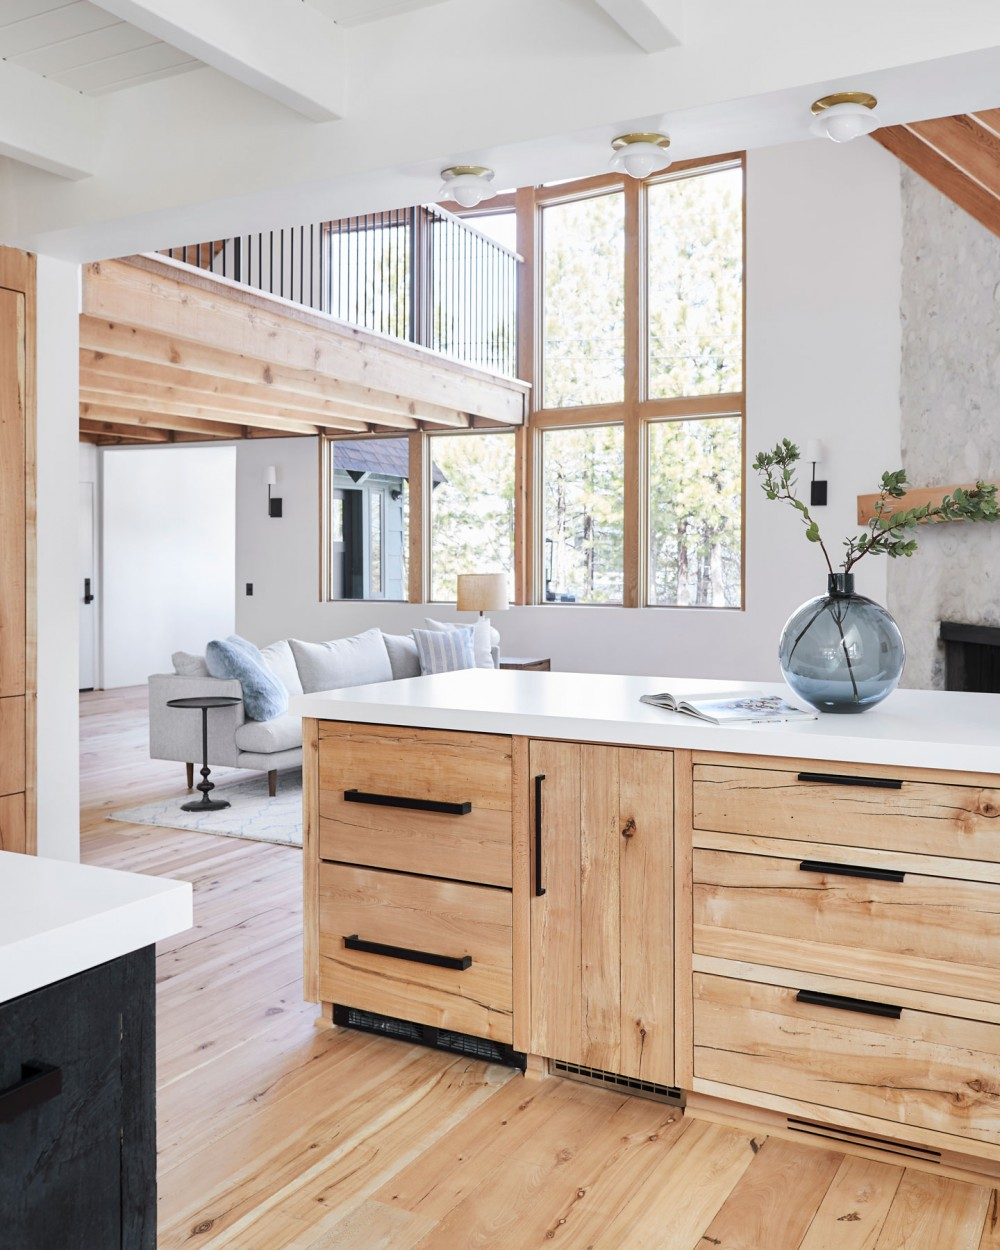 Matching wood floors and cabinetry create a welcoming rustic look, while the black hardware adds a sleek, modern touch.